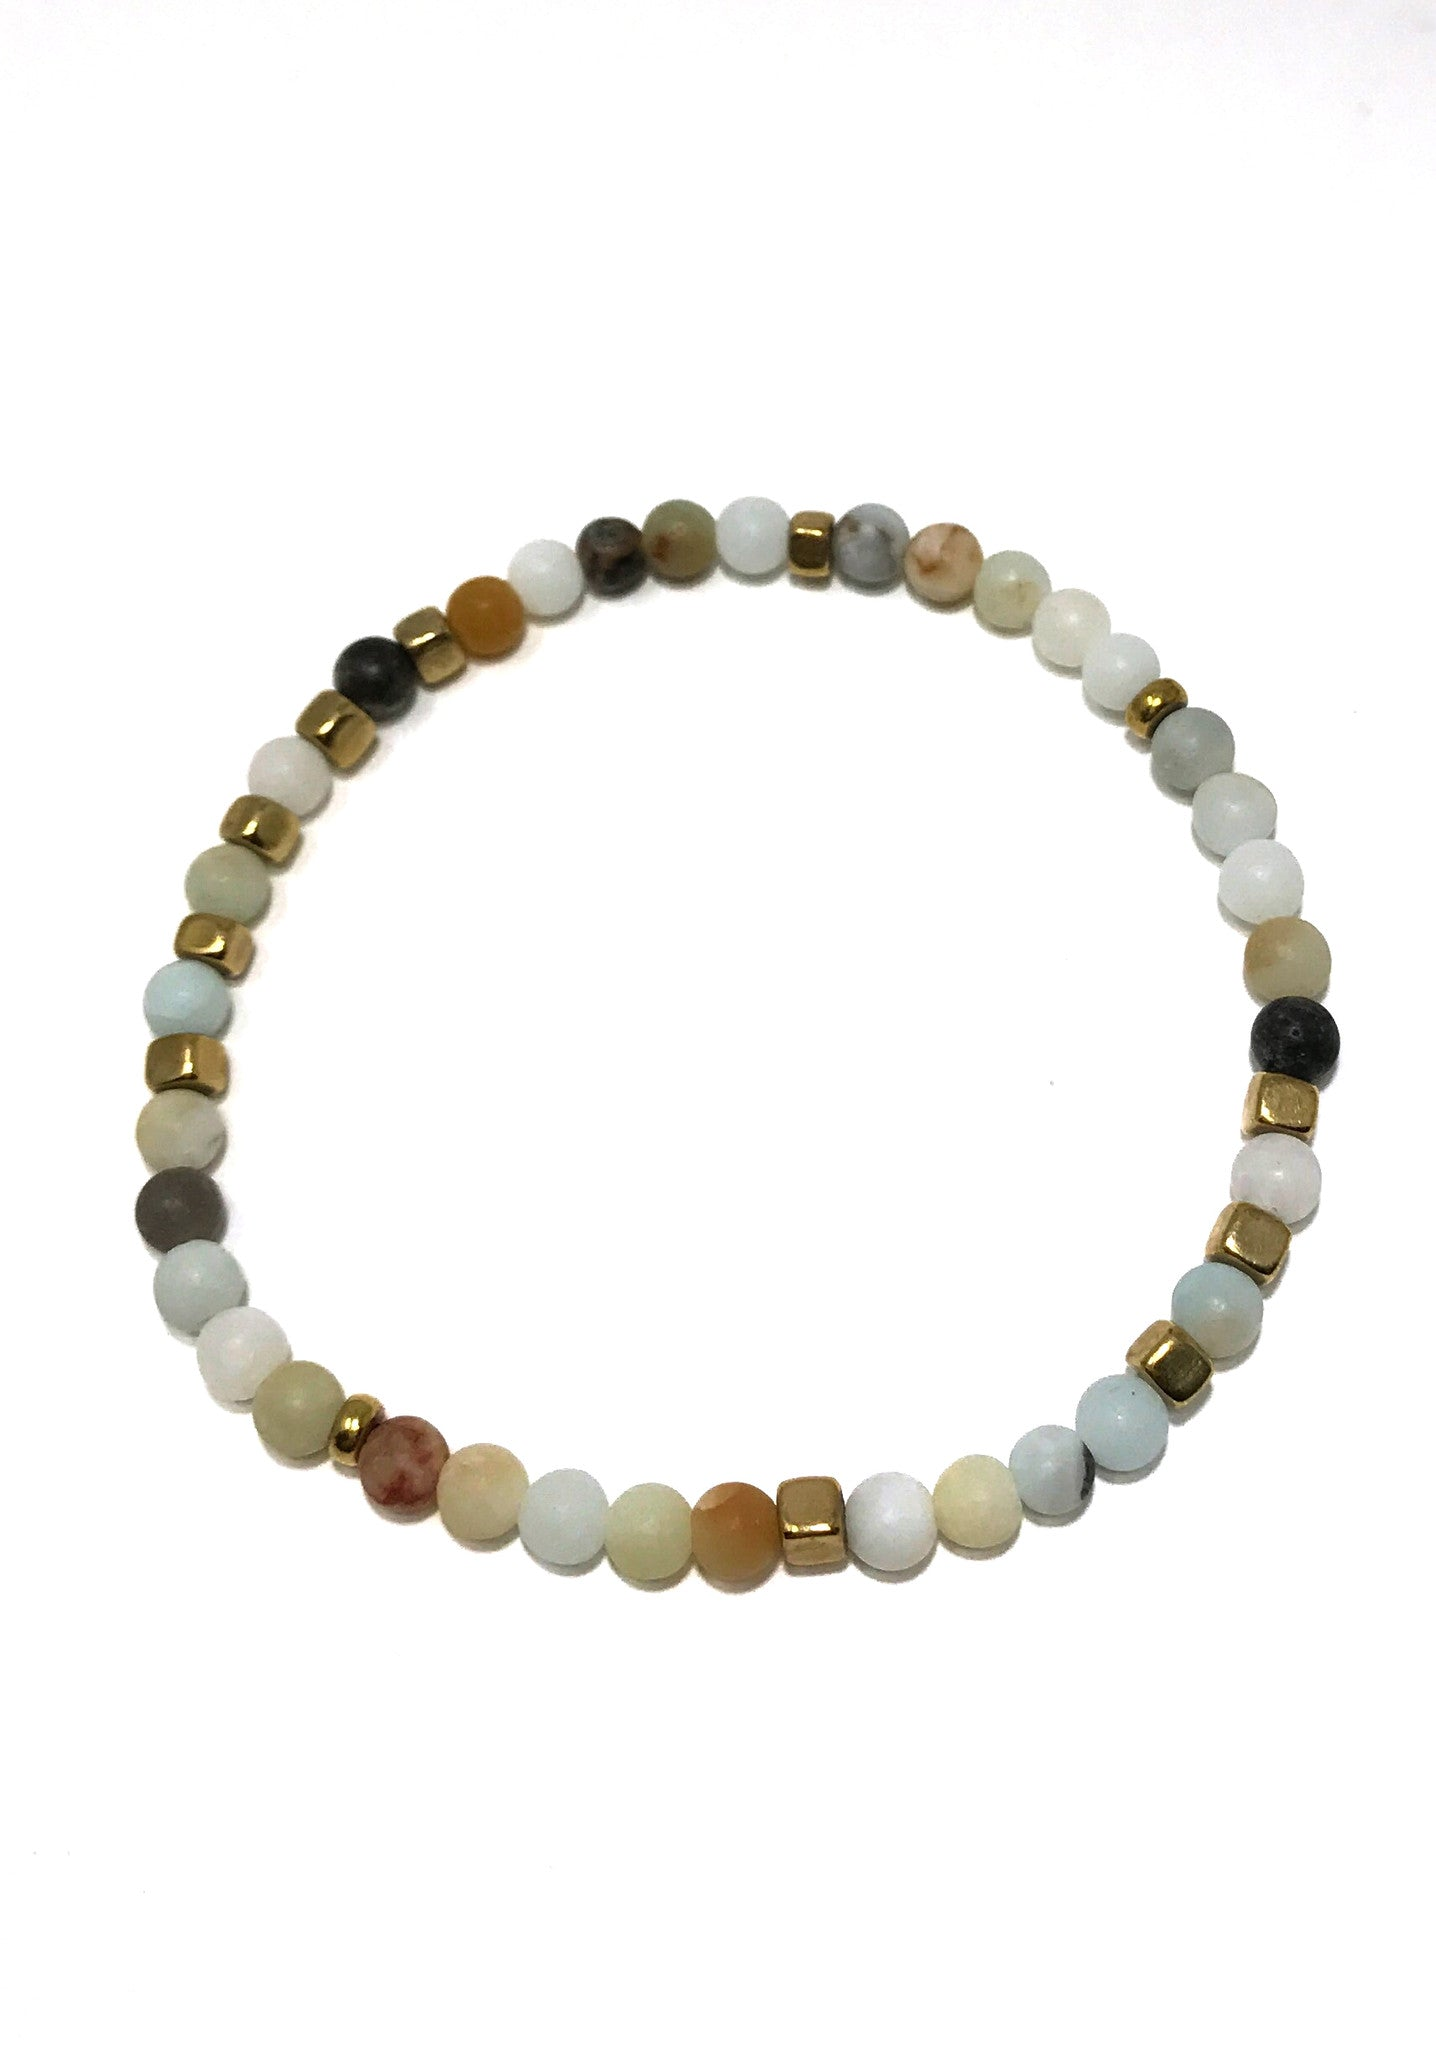 unisex stretchy charm product colorful healing men gemstone bracelet handmade chakra stone s stretch store for women balance beads yoga reiki power natural